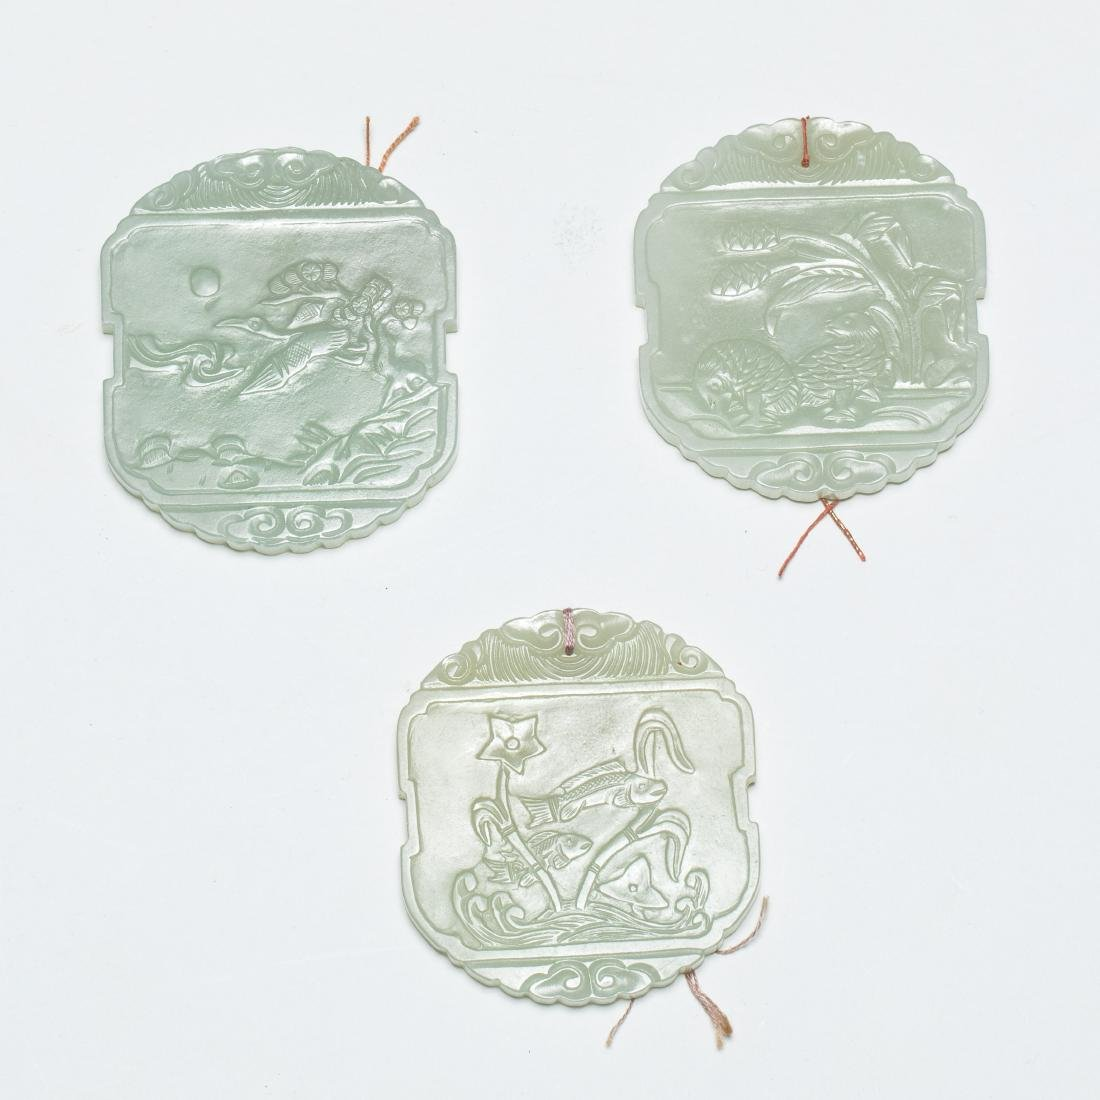 Chinese Antique Group of Jade Pendants